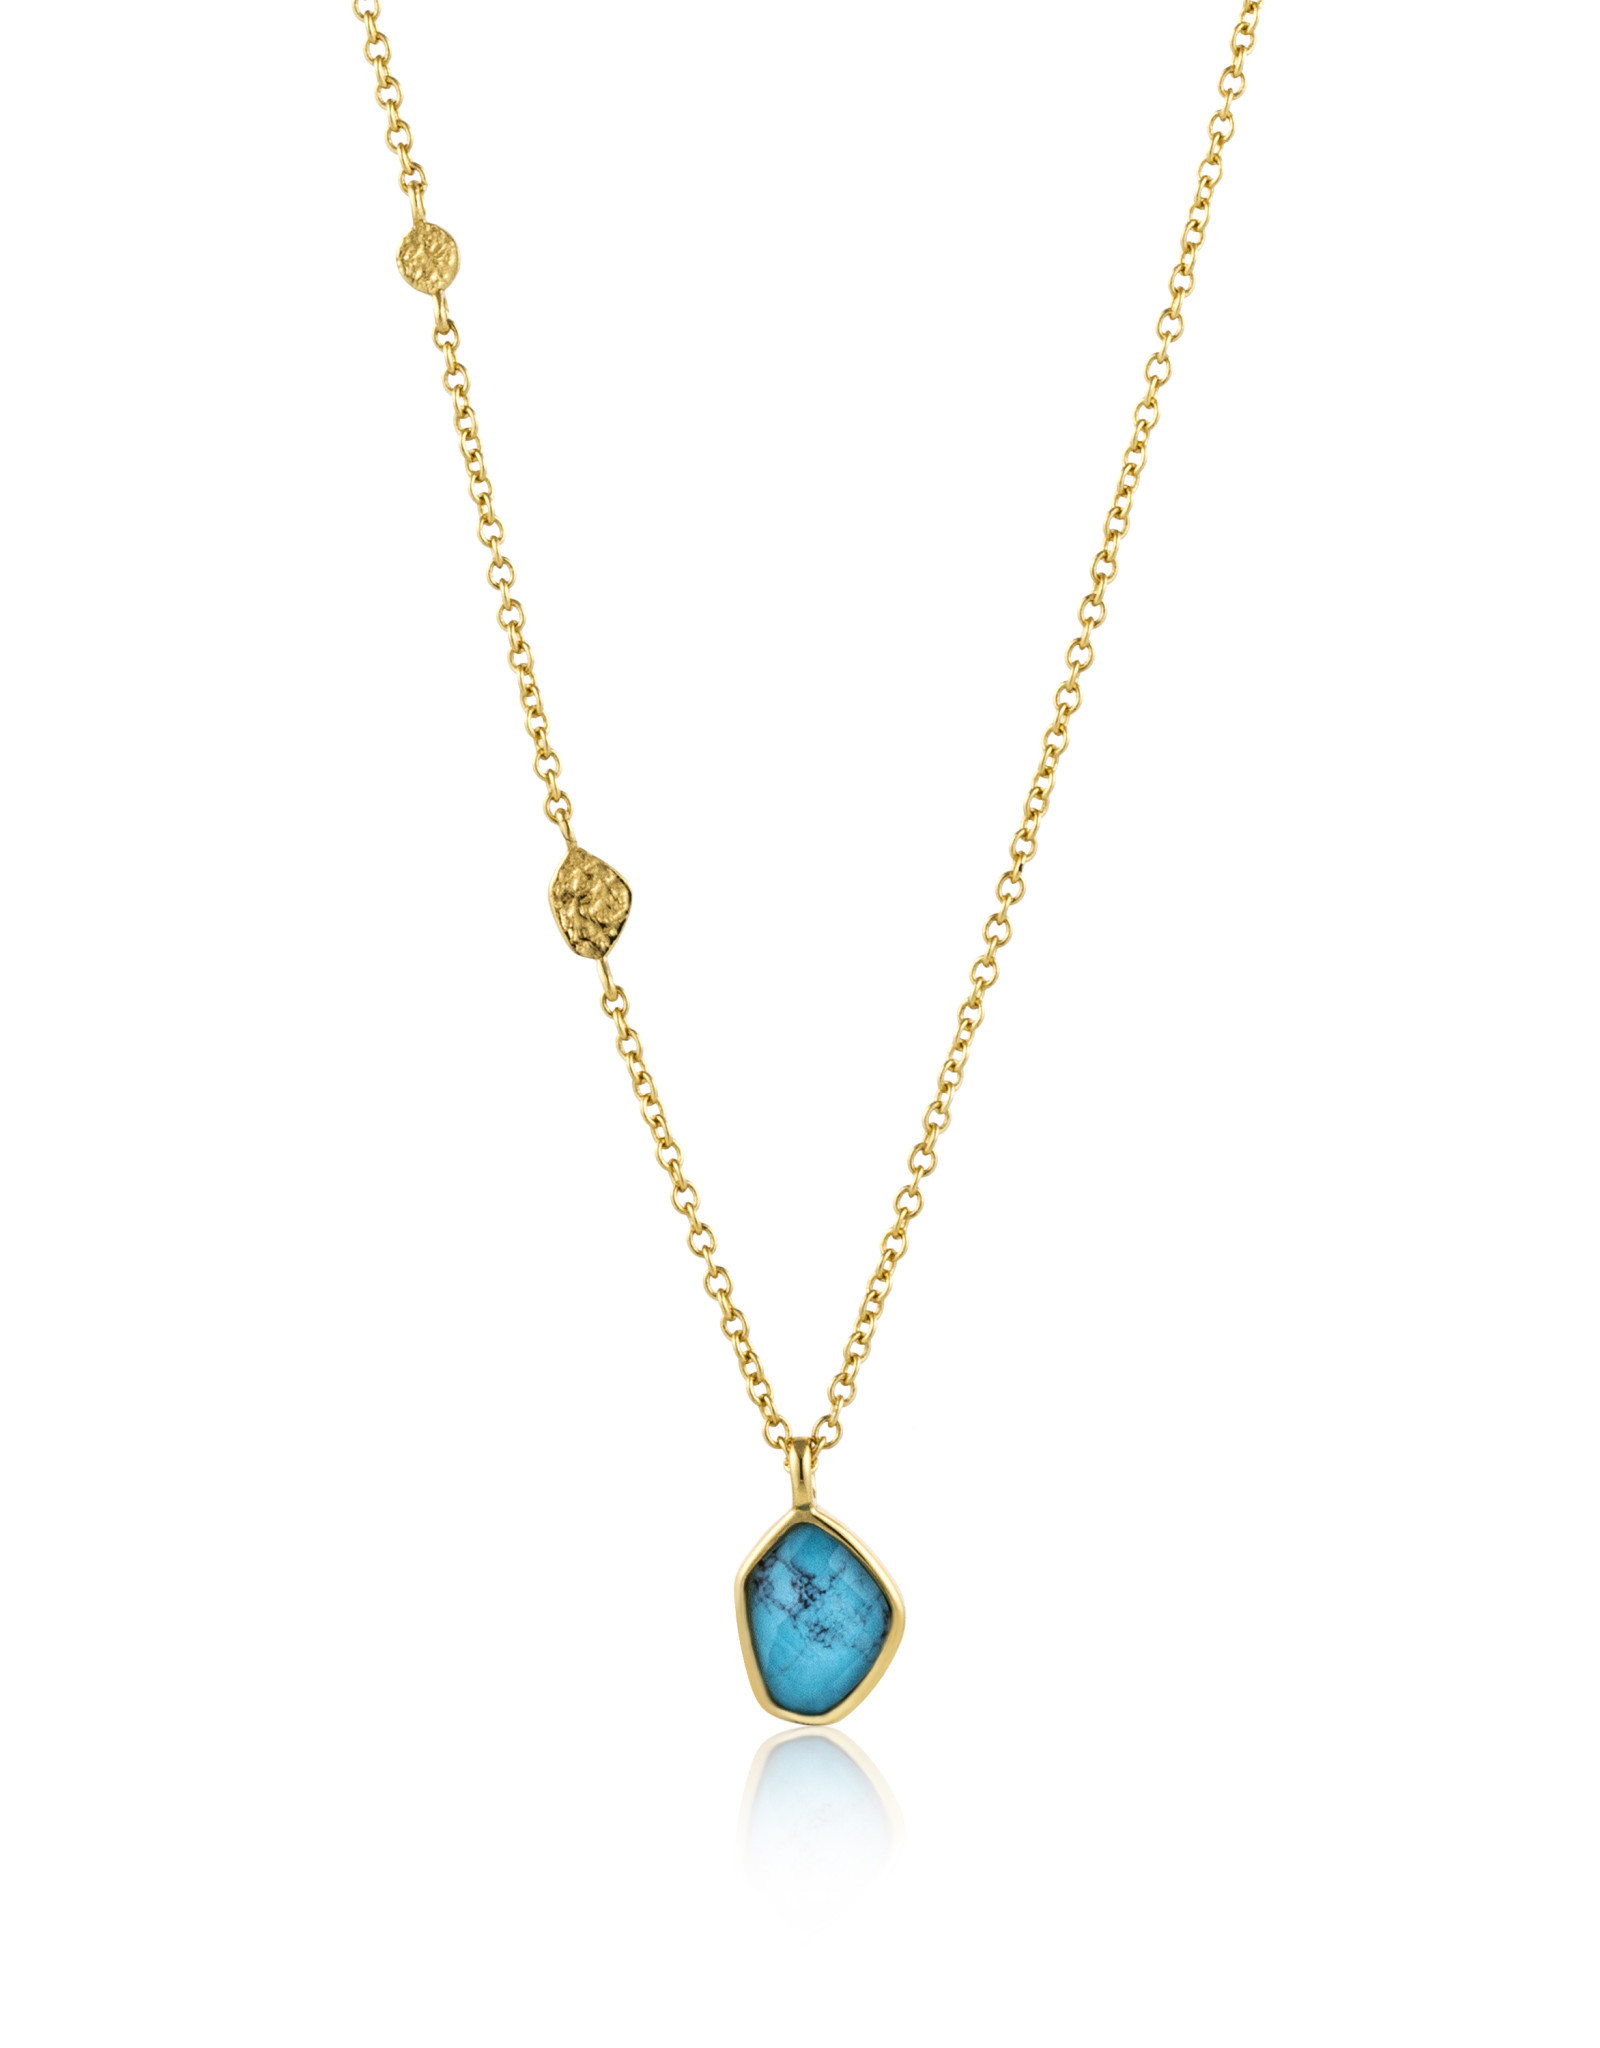 Ania Haie Ania Haie - Turquoise pendant necklace gold